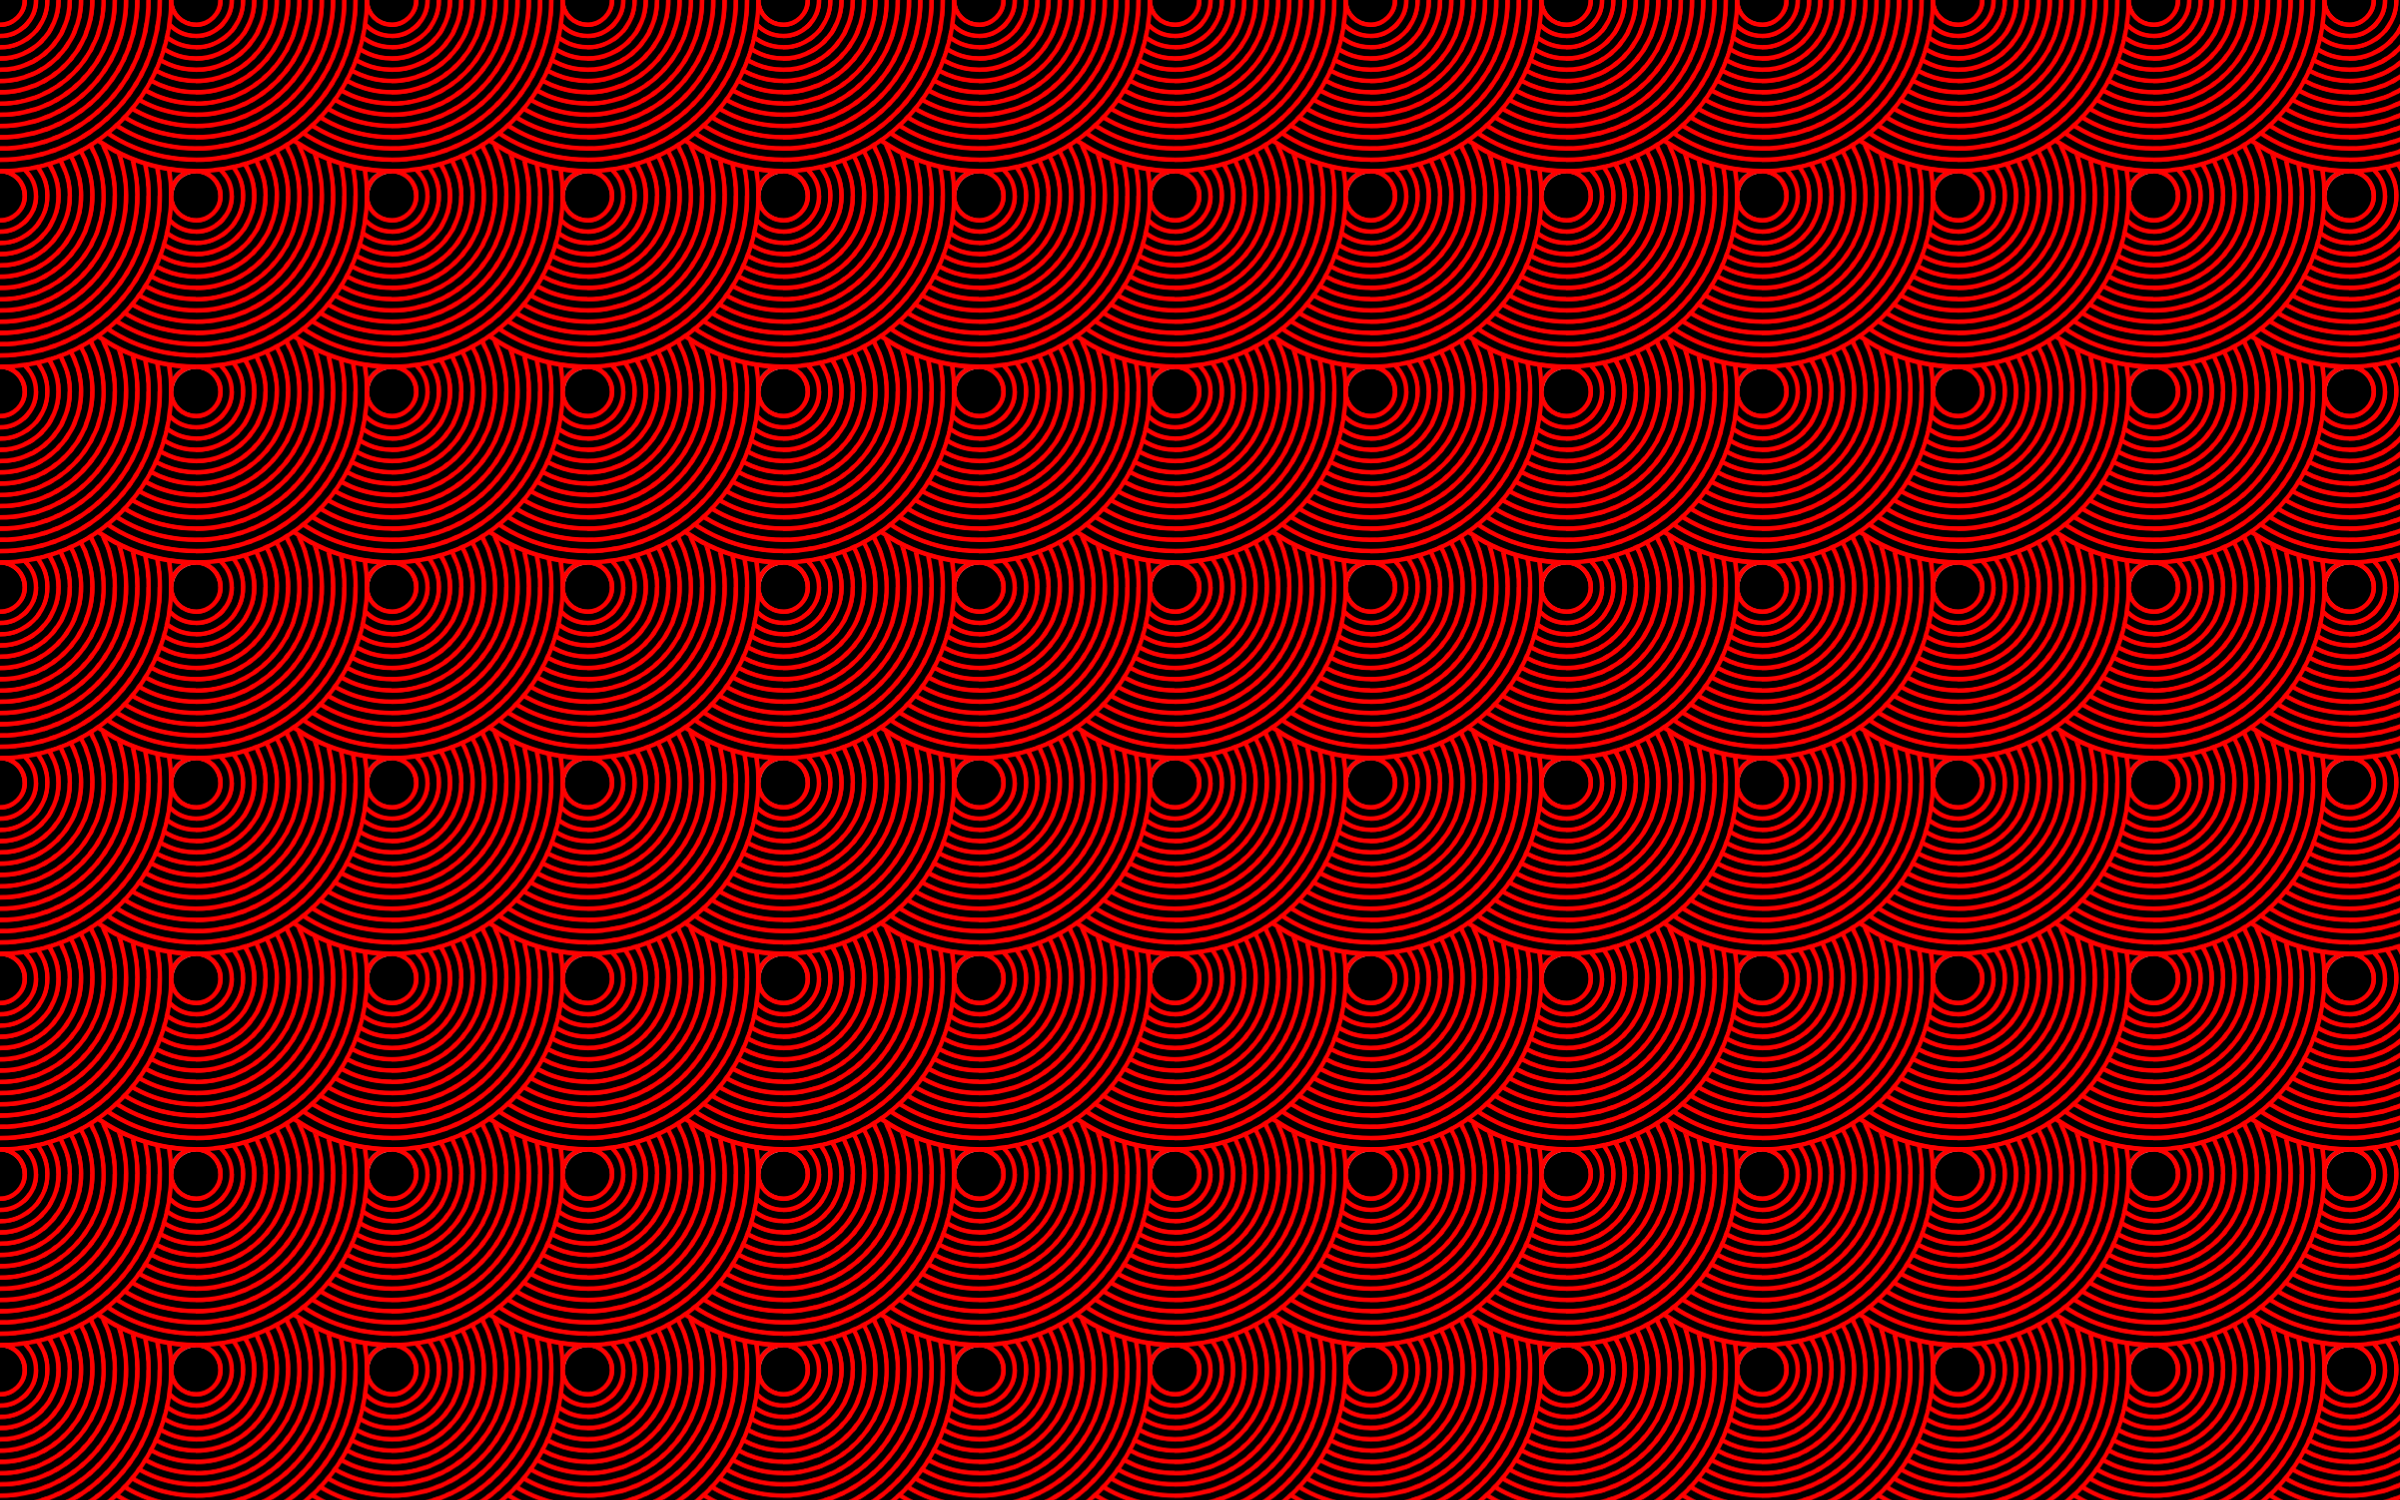 Seamless Concentric Circles Pattern 2 by GDJ